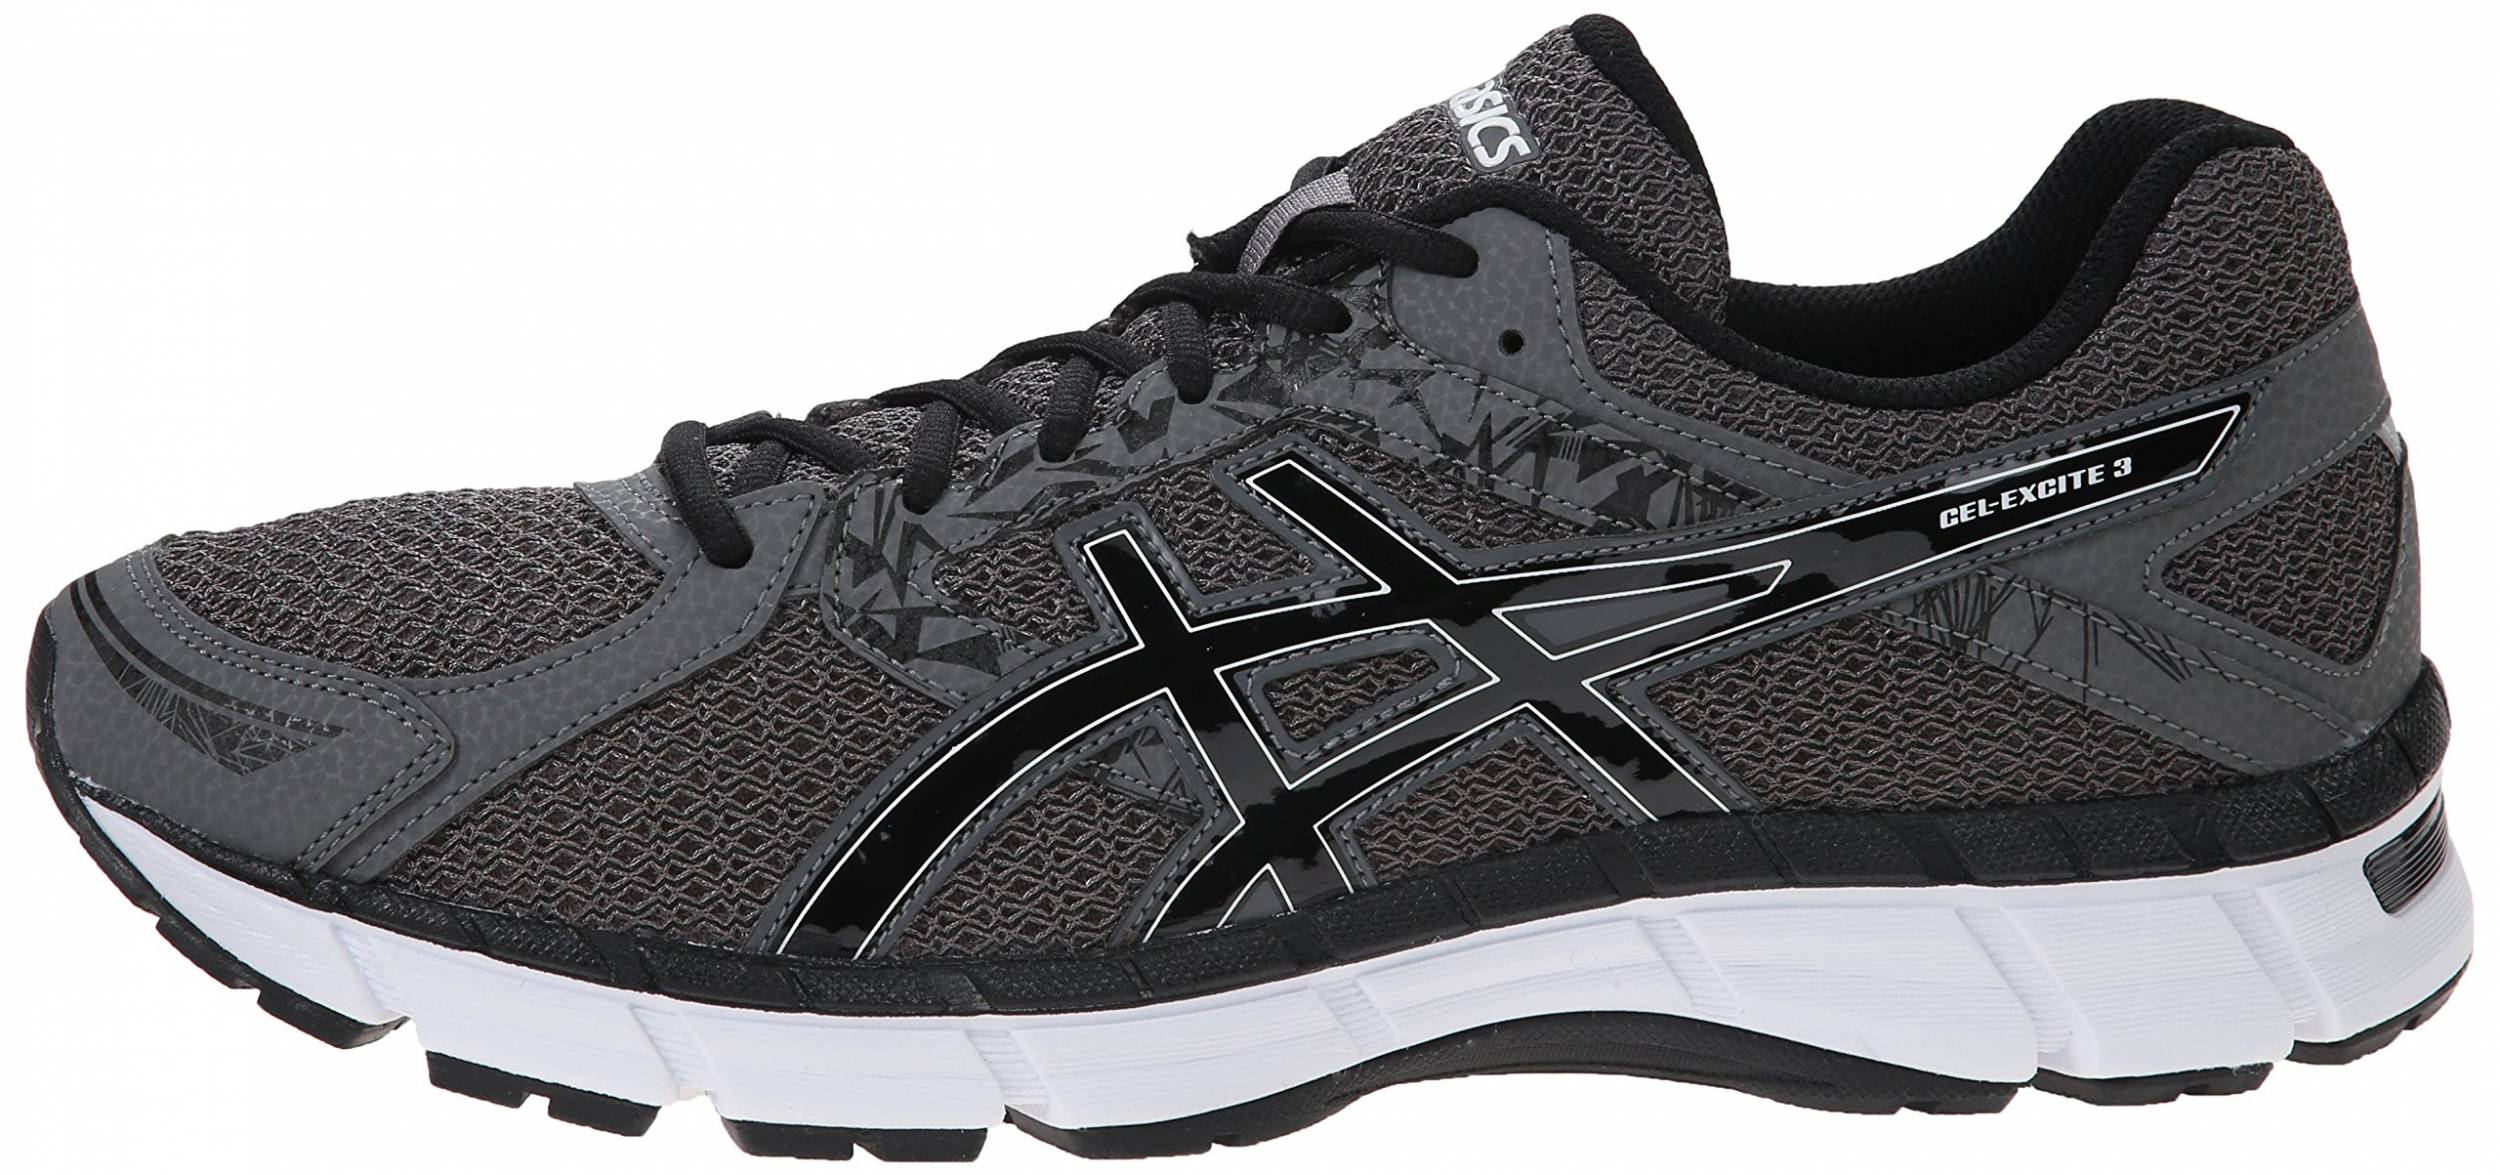 Only $35 + Review of Asics Gel Excite 3